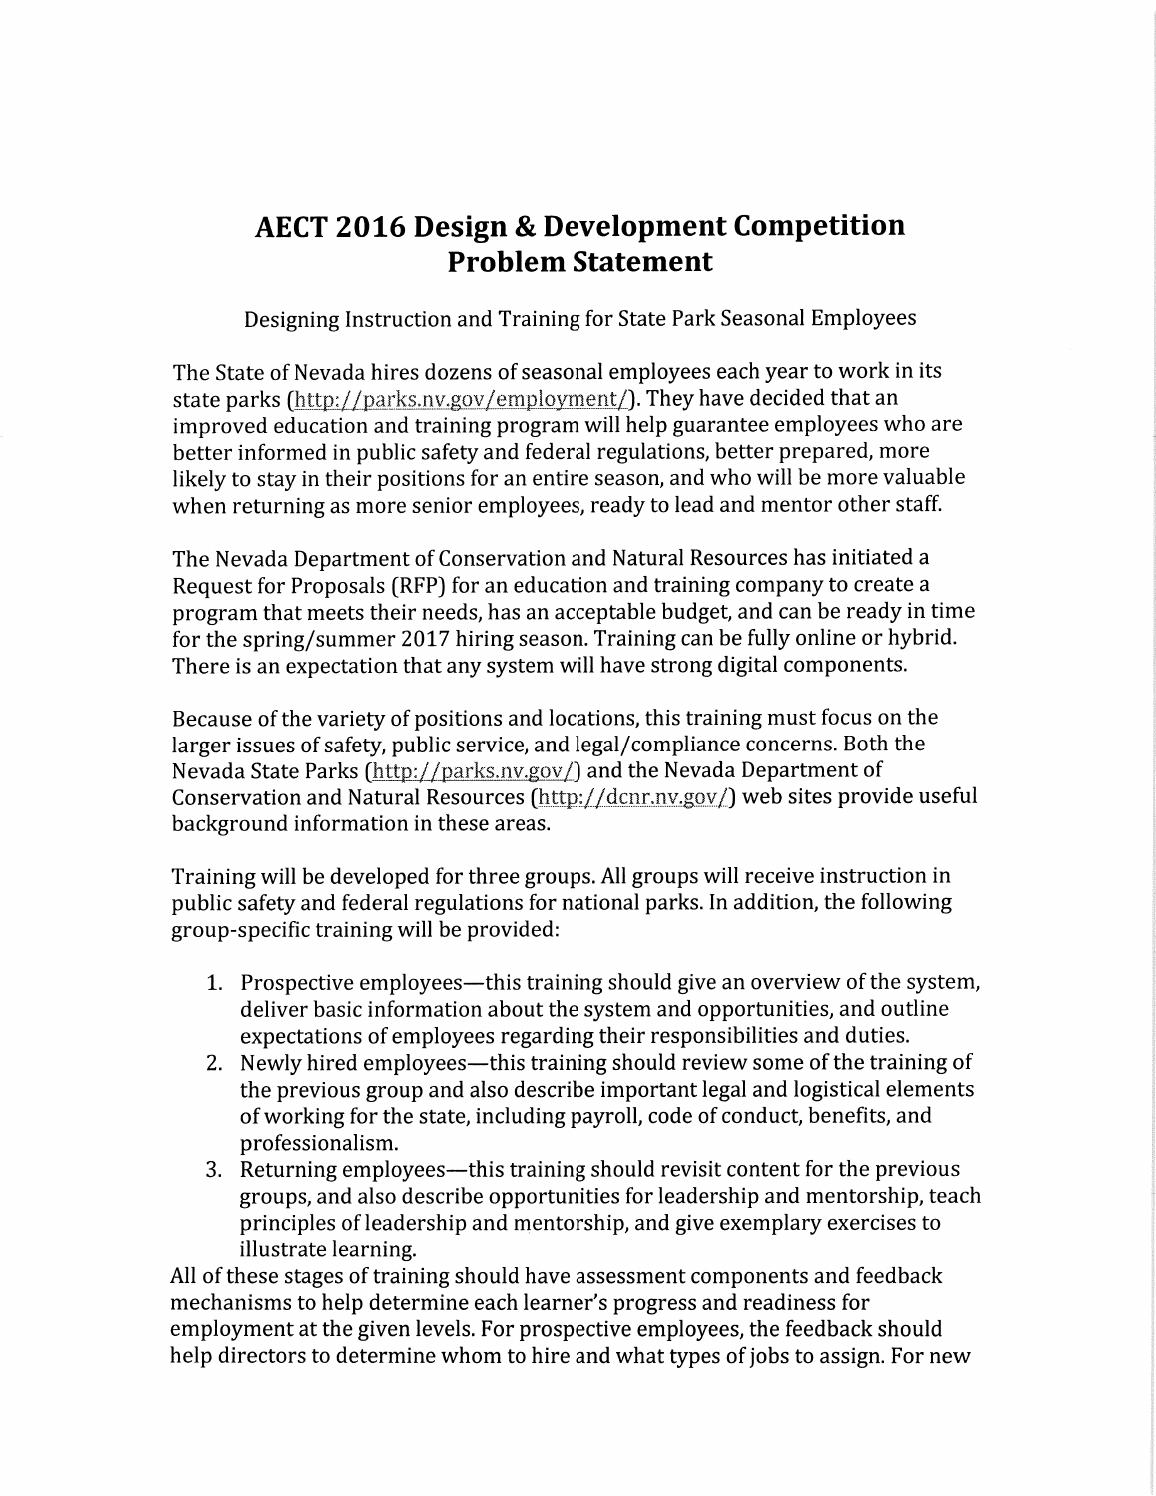 AECT 2016 PacifiCorp Competition Design Problem by ITFORUM